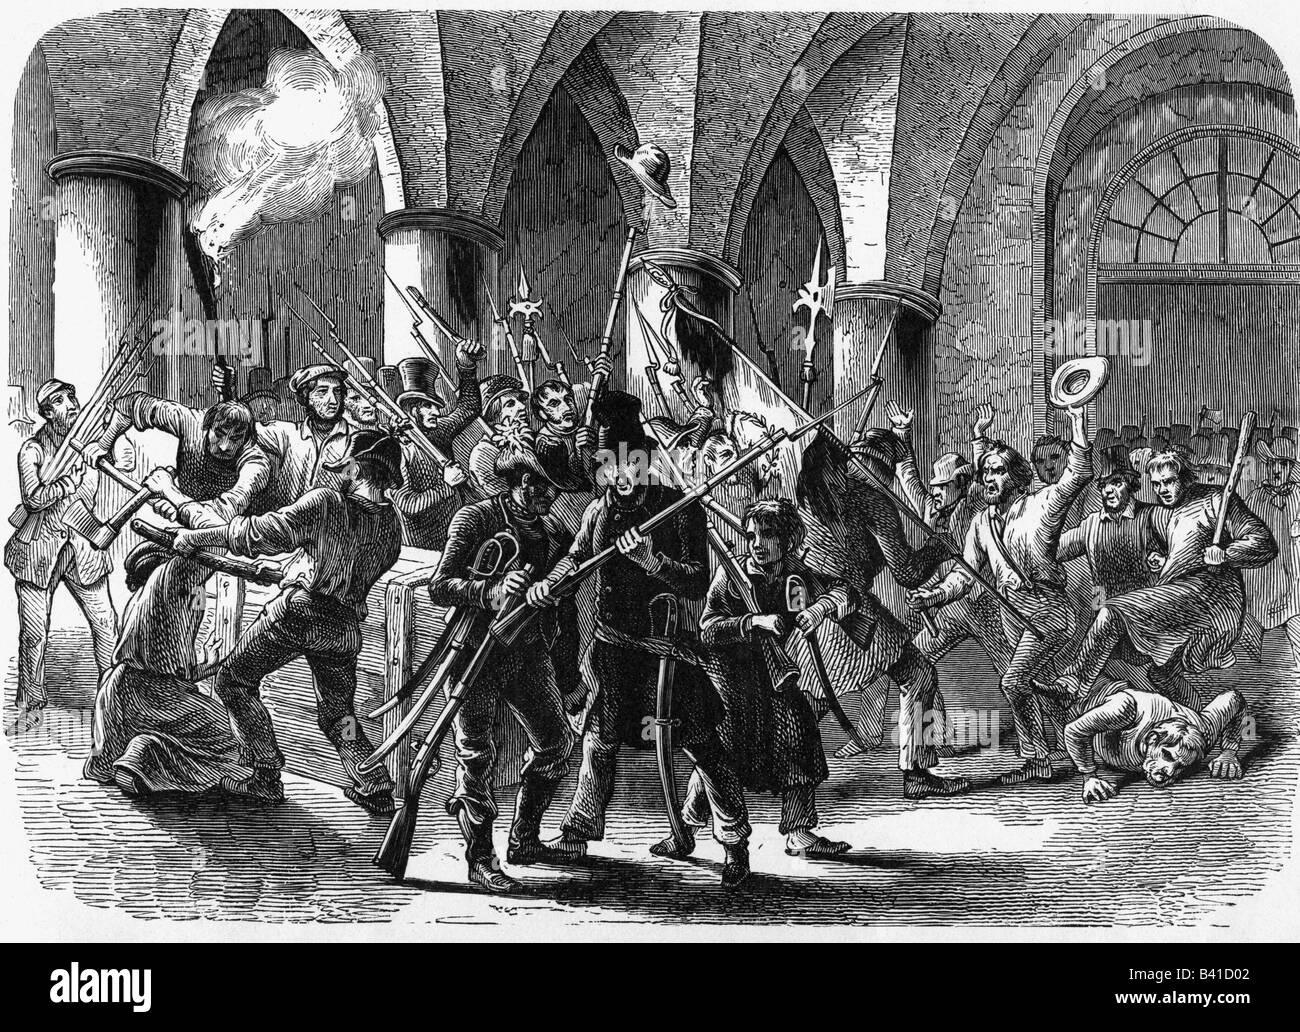 events, revolutions 1848 - 1849, Germany, Prussia, storming of the Berlin armoury, 14.6.1848, wood engraving, 19th - Stock Image